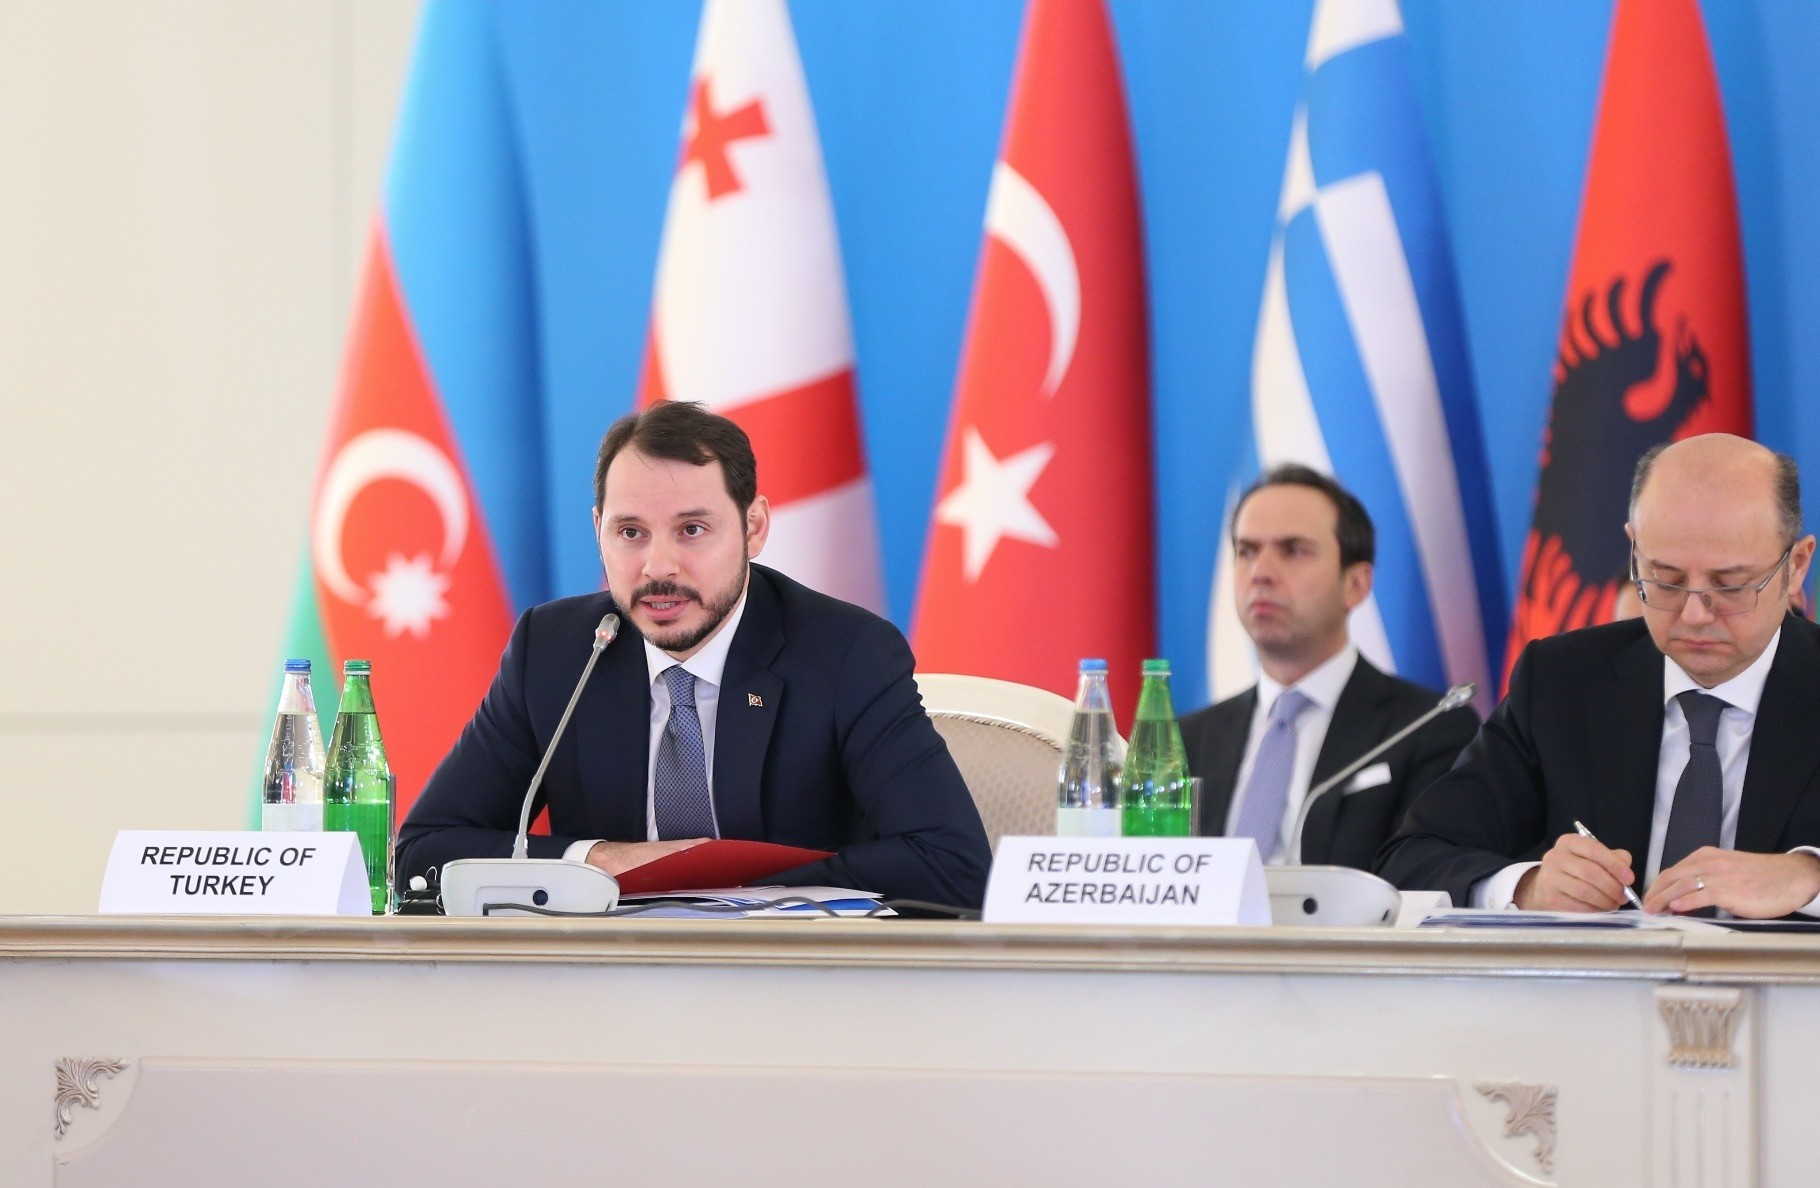 Energy Minister Albayrak delivers a speech at the 4th Ministerial Meeting of the Southern Gas Corridor Advisory Board, Baku, Azerbaijan, Feb. 15, 2018.